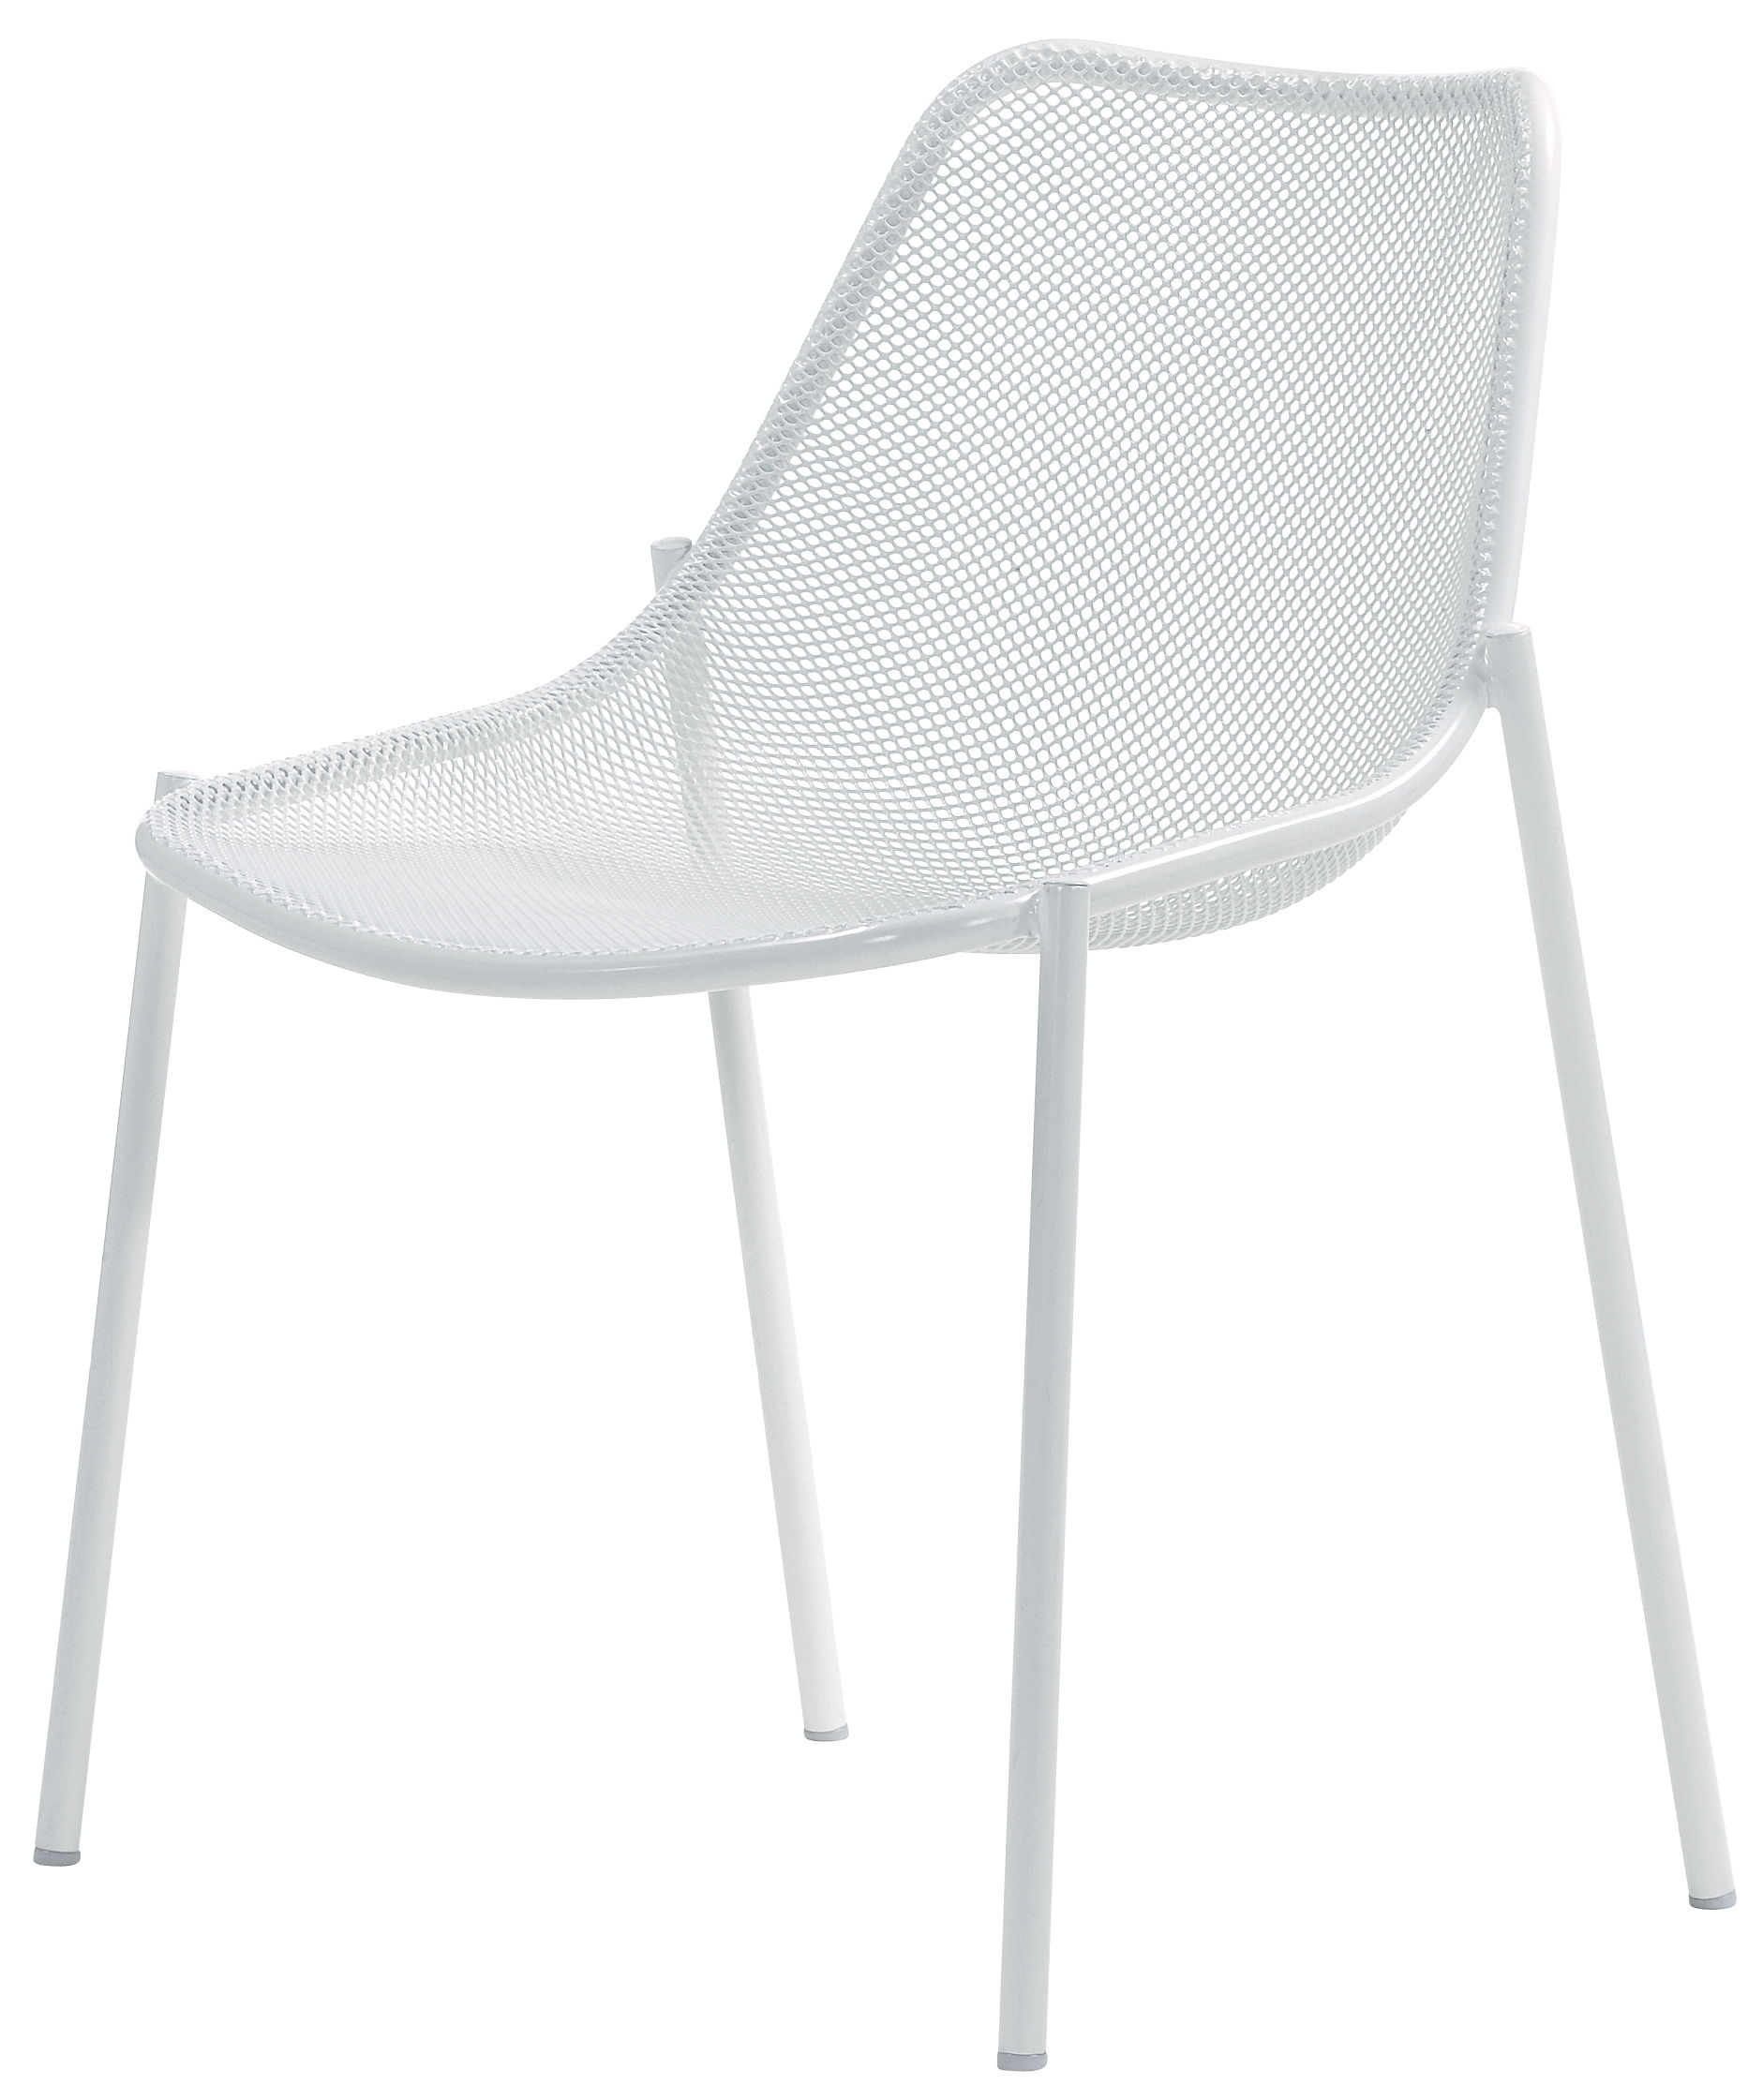 chaise empilable round m tal blanc emu made in design. Black Bedroom Furniture Sets. Home Design Ideas